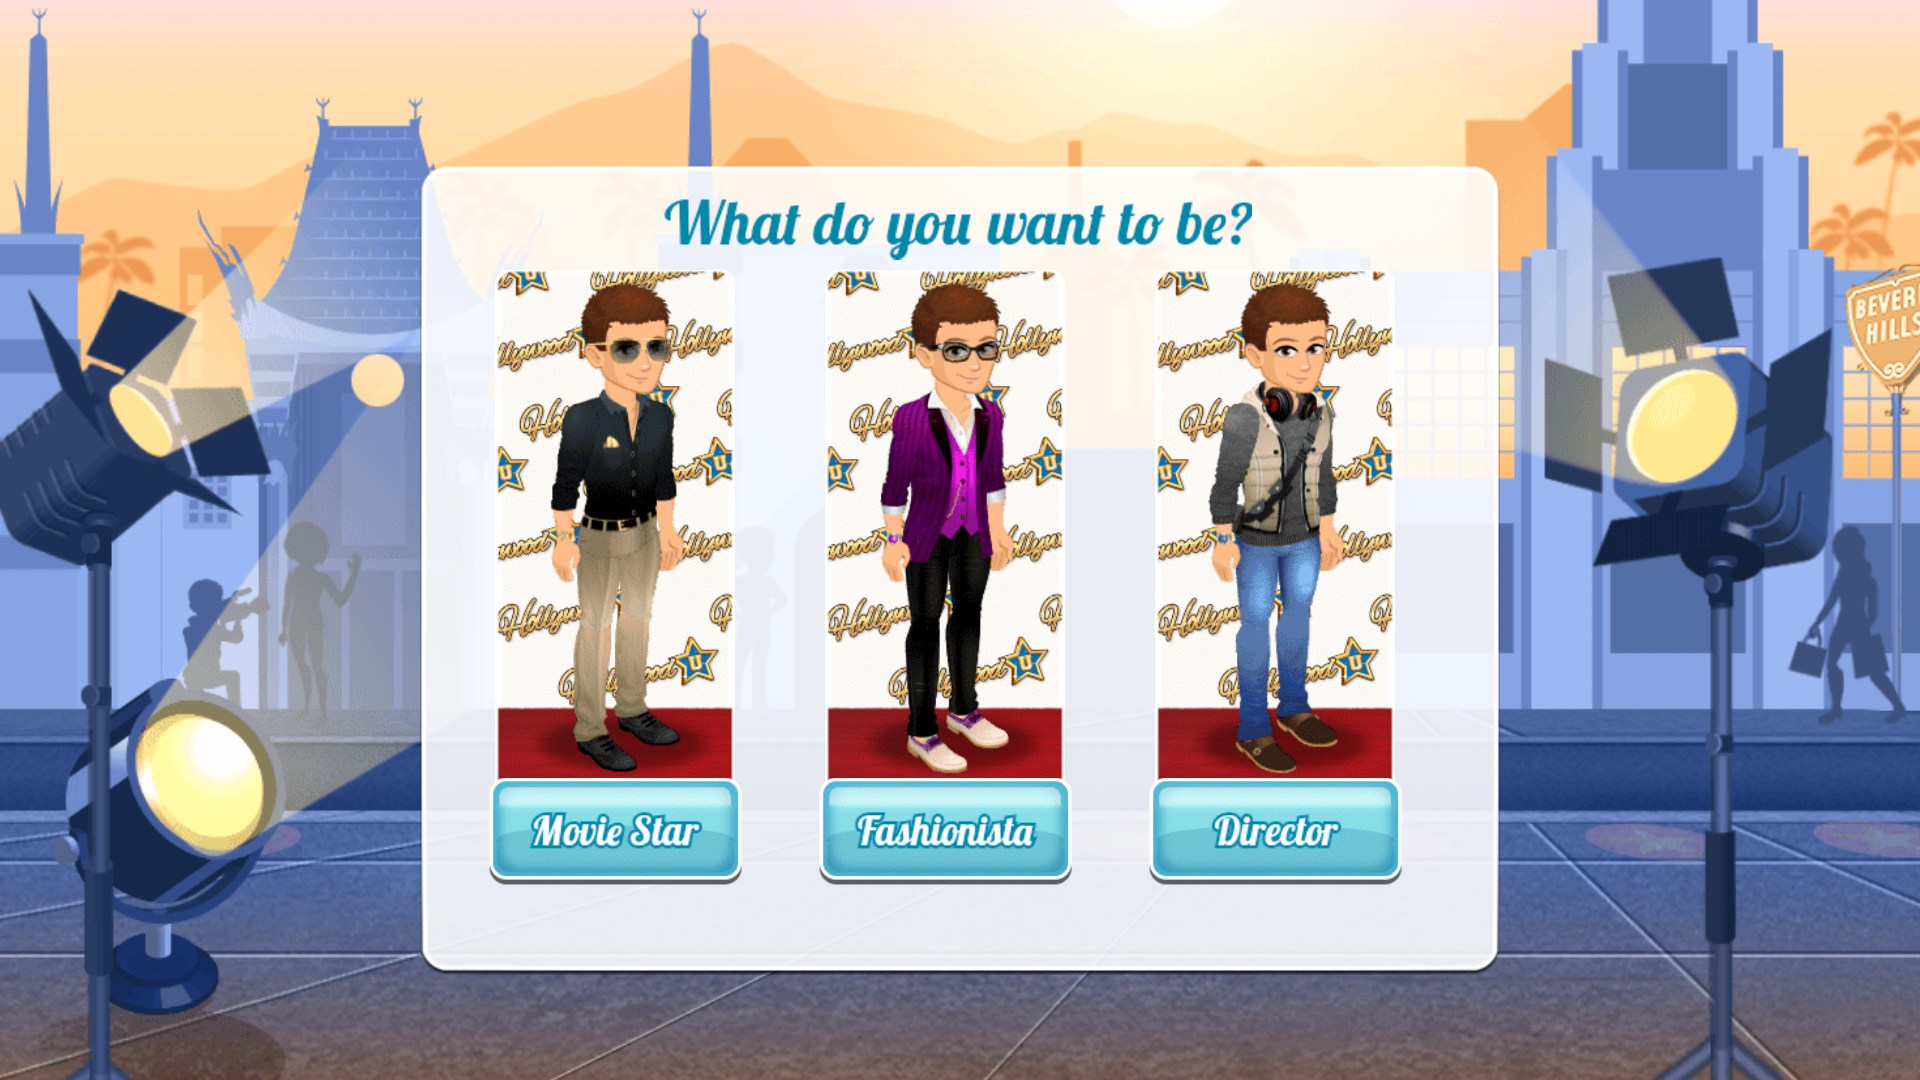 hollywood u rising stars dating chris Hollywood u: rising stars by to celebrate the premiere of hollywood u school app quests date diamonds games playing please played dating hss level quest.